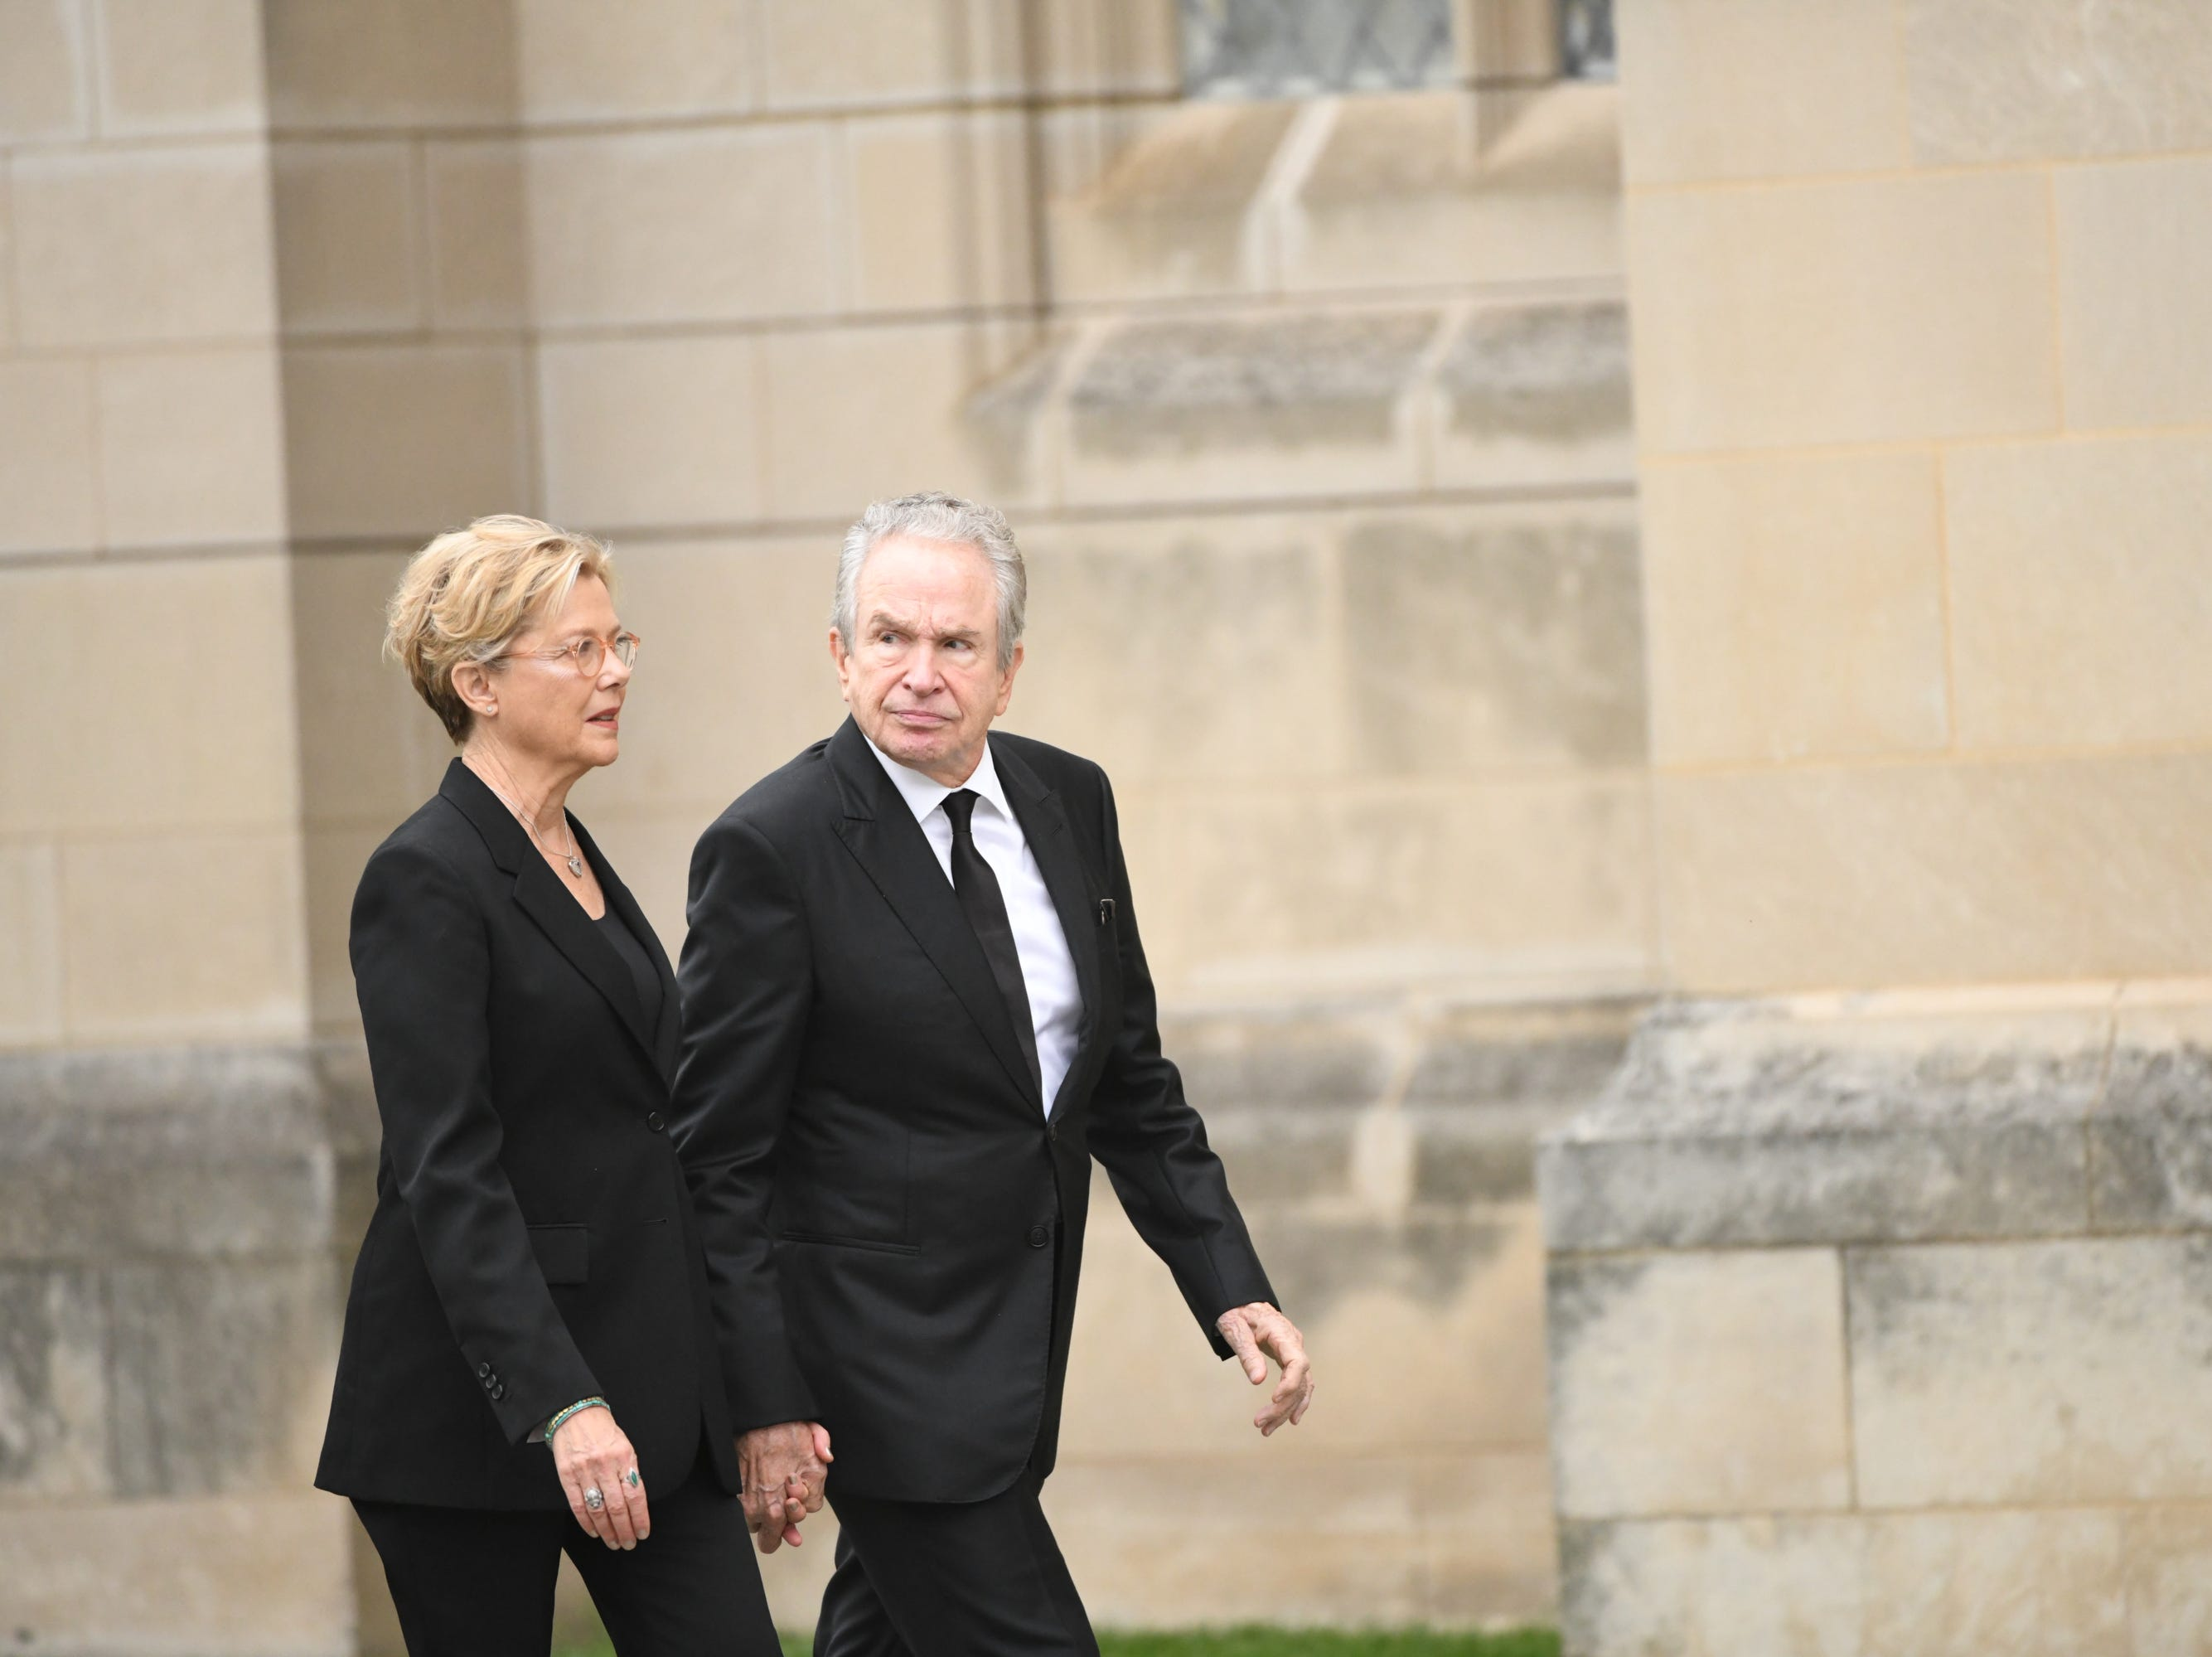 Pallbearer Warren Beatty and his wife Annette Bening arrive at the National Cathedral in Washington for a memorial service for his friend John McCain.